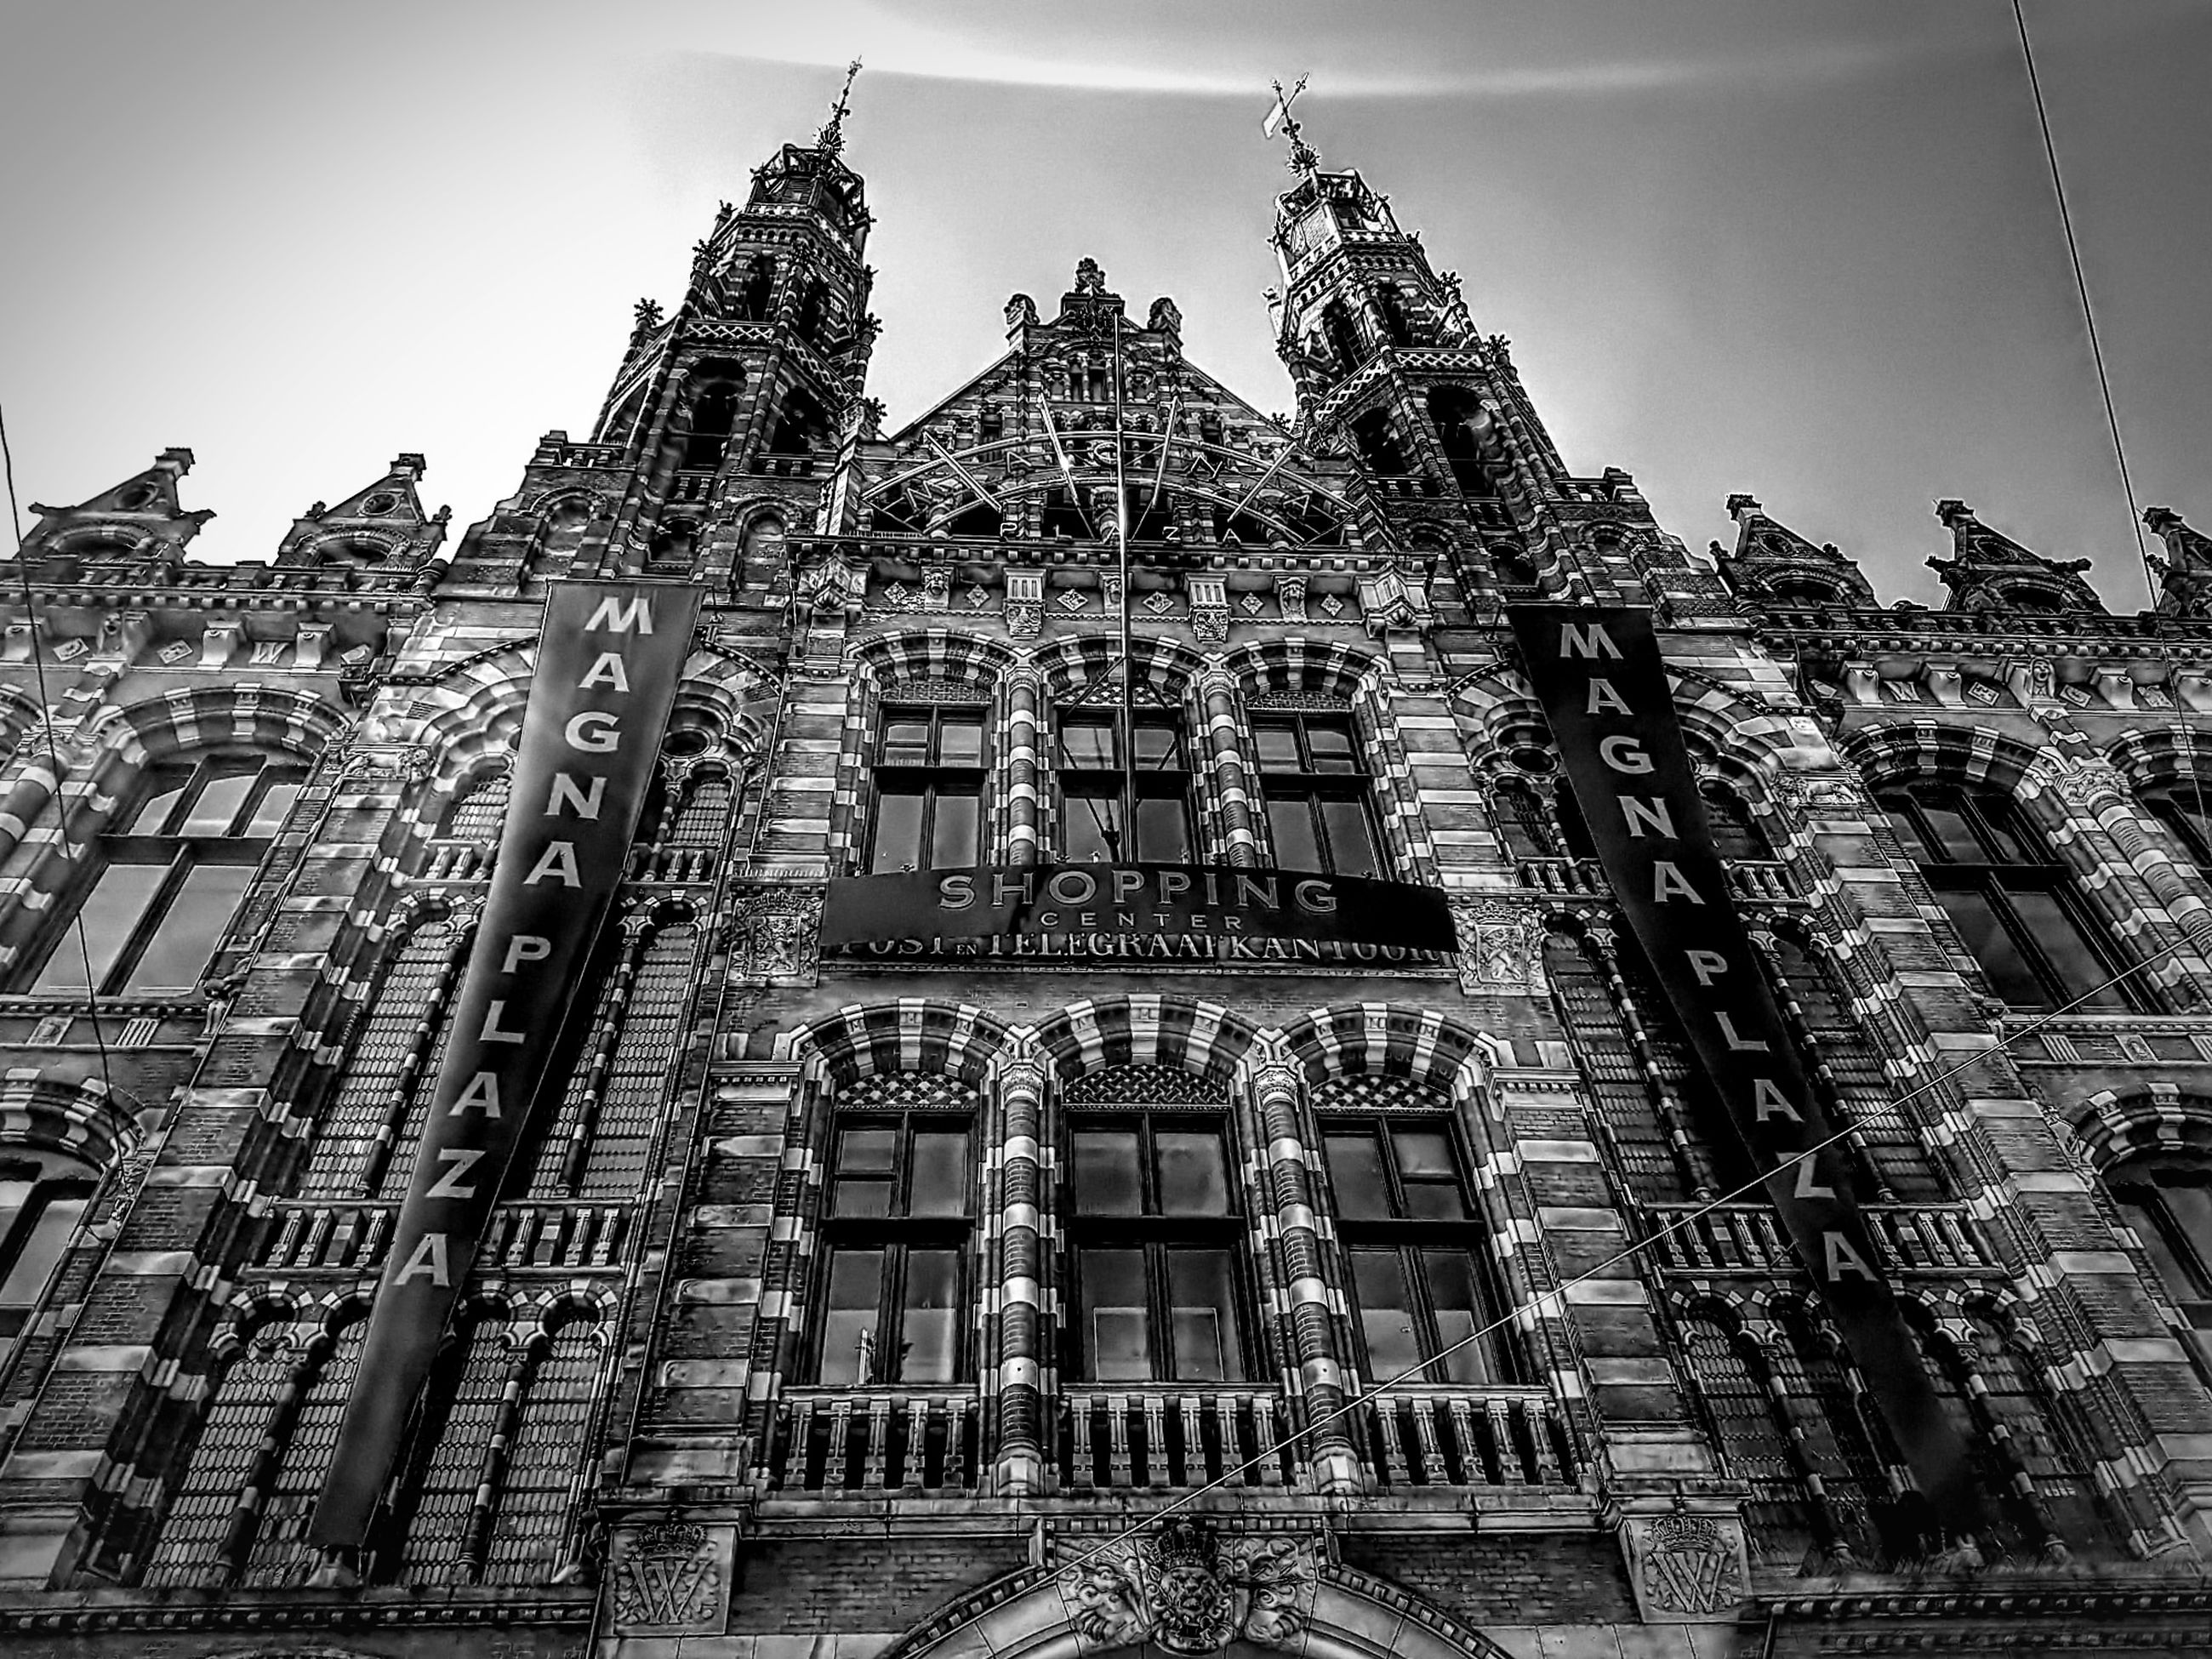 built structure, architecture, low angle view, building exterior, religion, place of worship, building, belief, spirituality, sky, the past, history, travel destinations, no people, day, tourism, nature, facade, outdoors, ornate, ancient civilization, gothic style